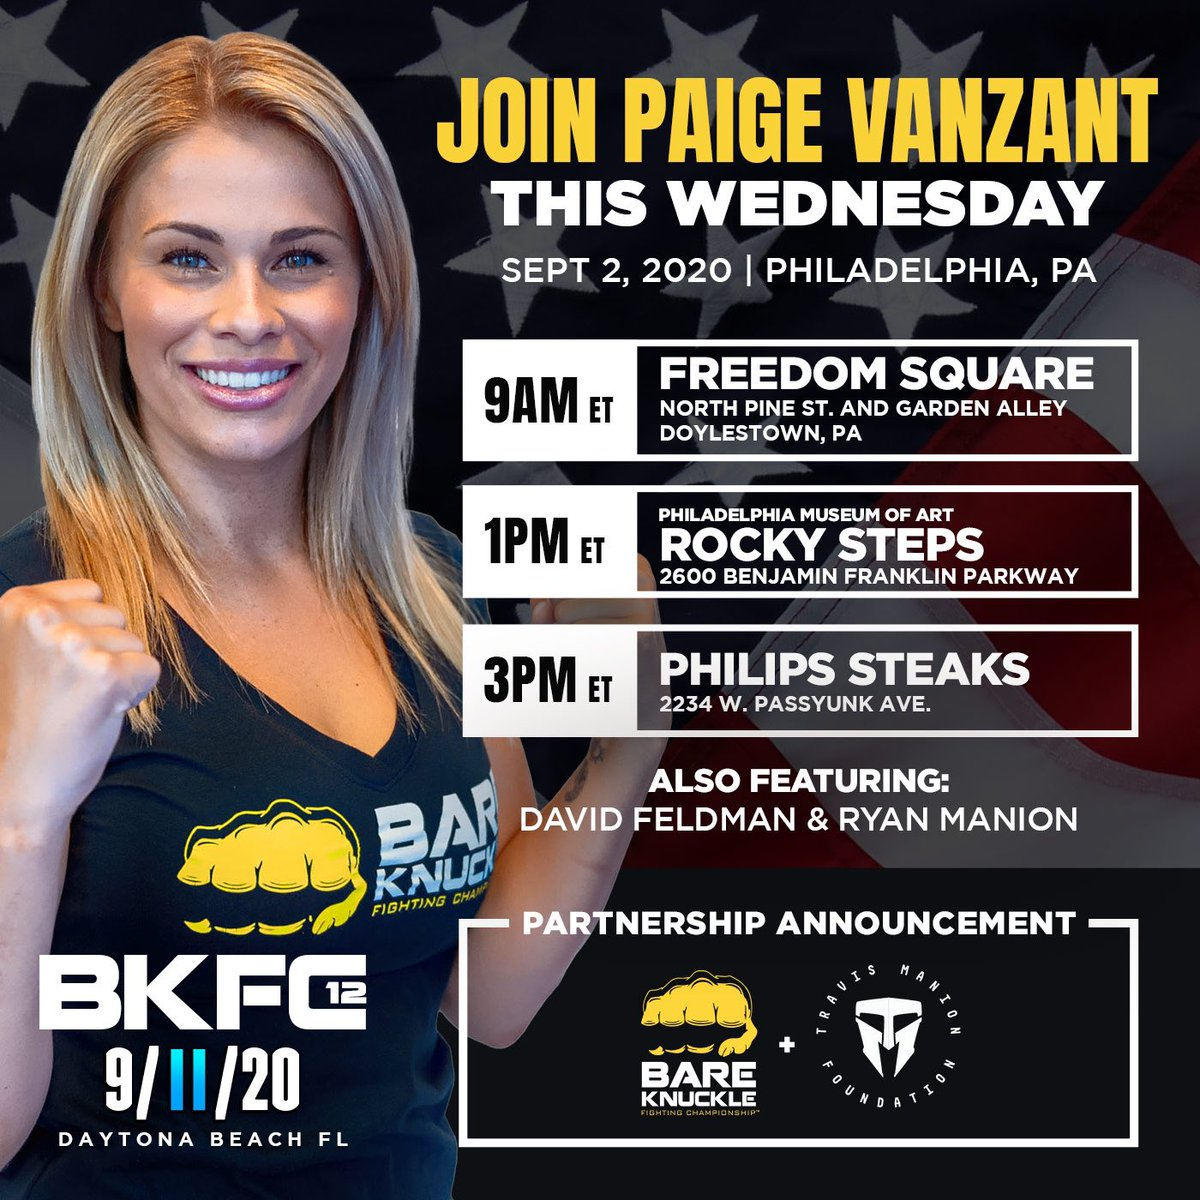 Calling all Spartans in the Philly & Doylestown area! We're inviting you to meet Combat Sports Super Star, @paigevanzant tomorrow starting at 9am in Freedom Square for a special partnership announcement between TMF & @bareknucklefc (BKFC). Don't forget to wear your TMF t-shirts! https://t.co/ep5C0VIVog